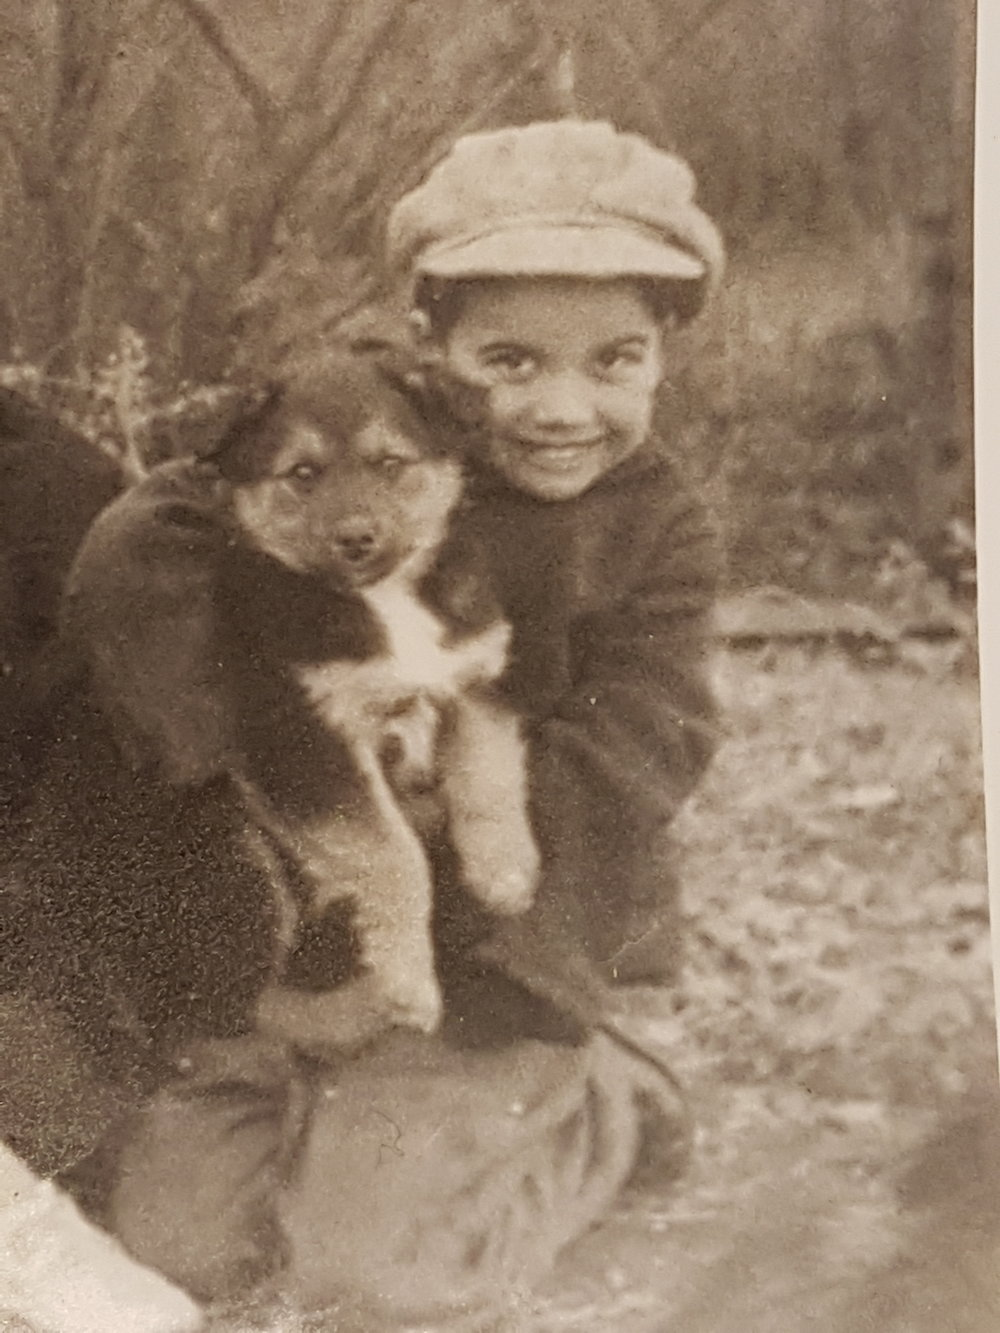 Warren Michelson as a young boy on the farm - supplied photo